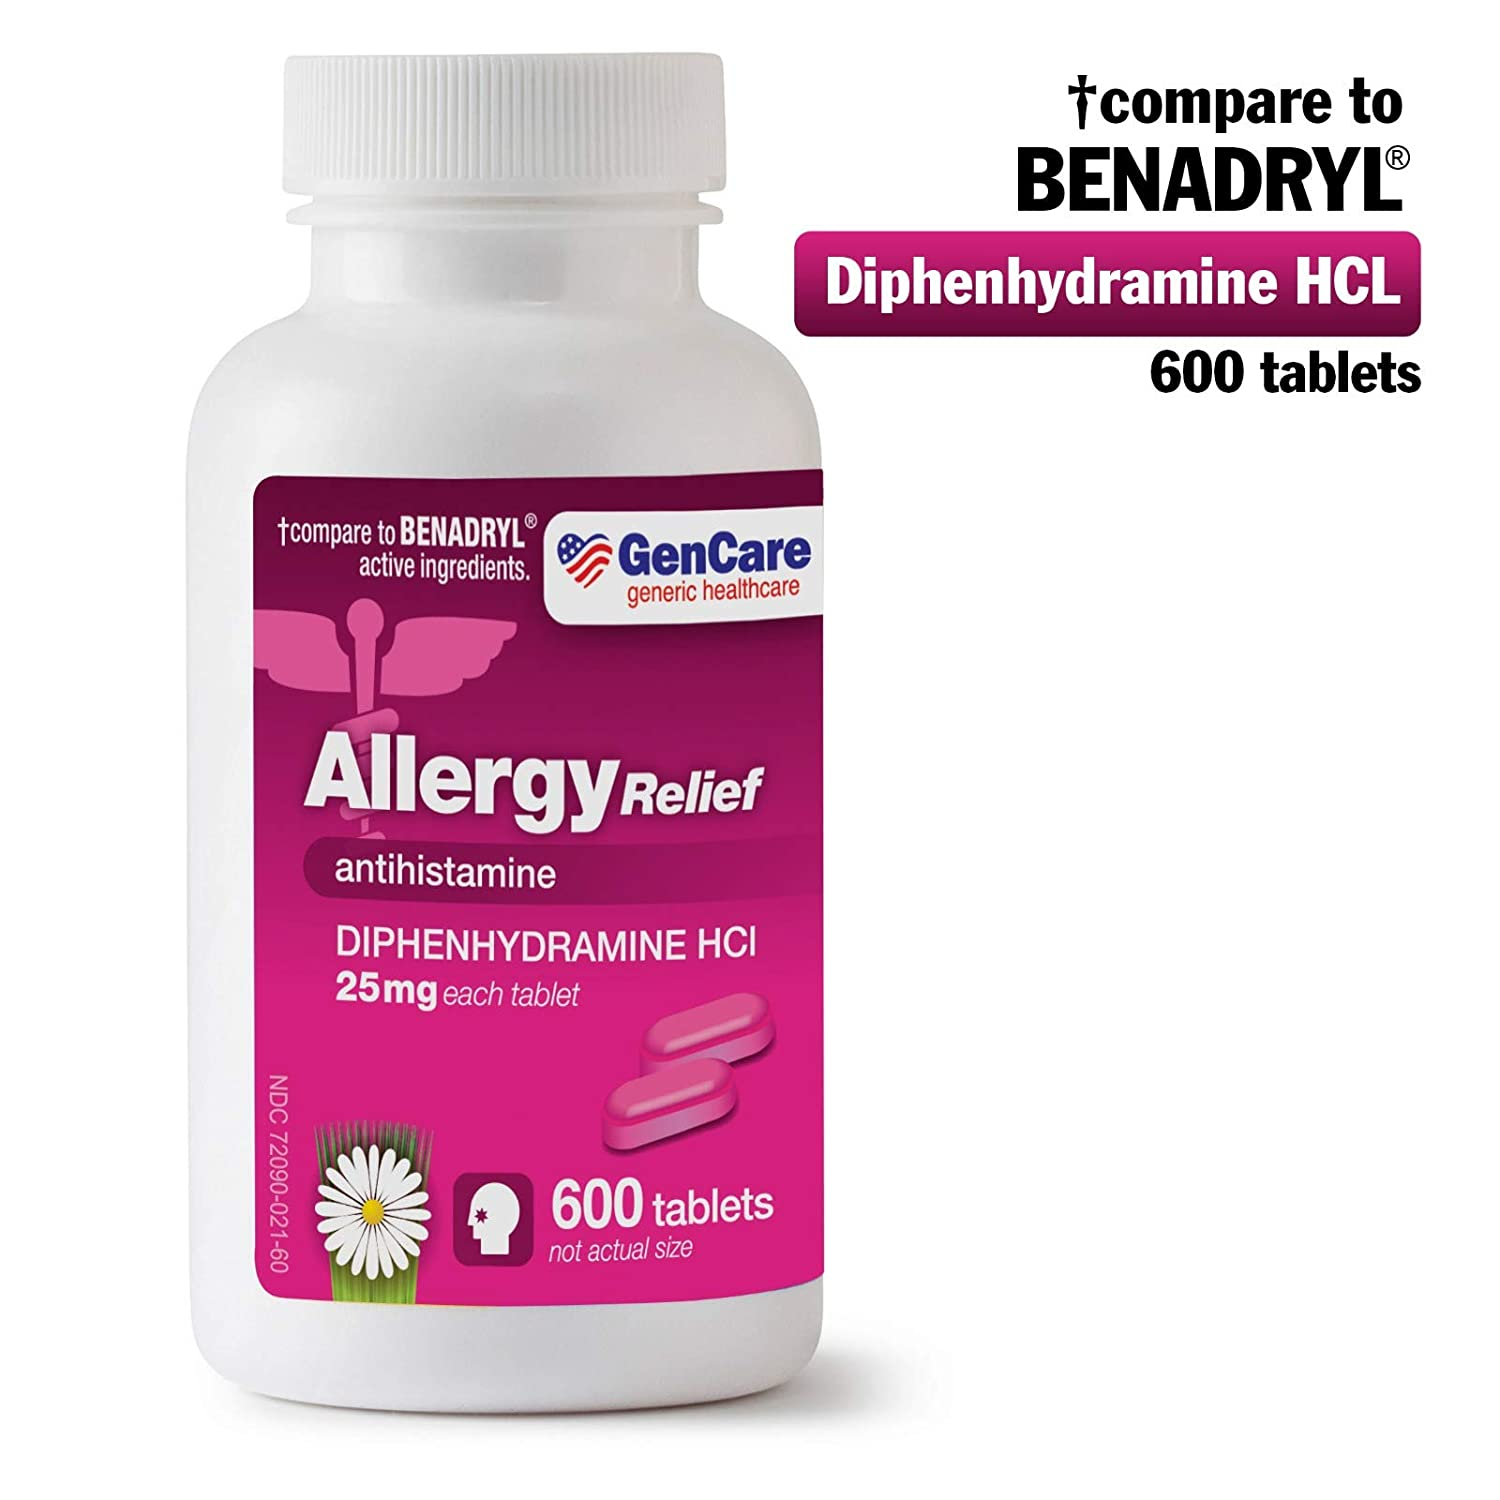 GenCare - Allergy Relief Medicine | Antihistamine Diphenhydramine HCl 25mg  (600 Tablets Per